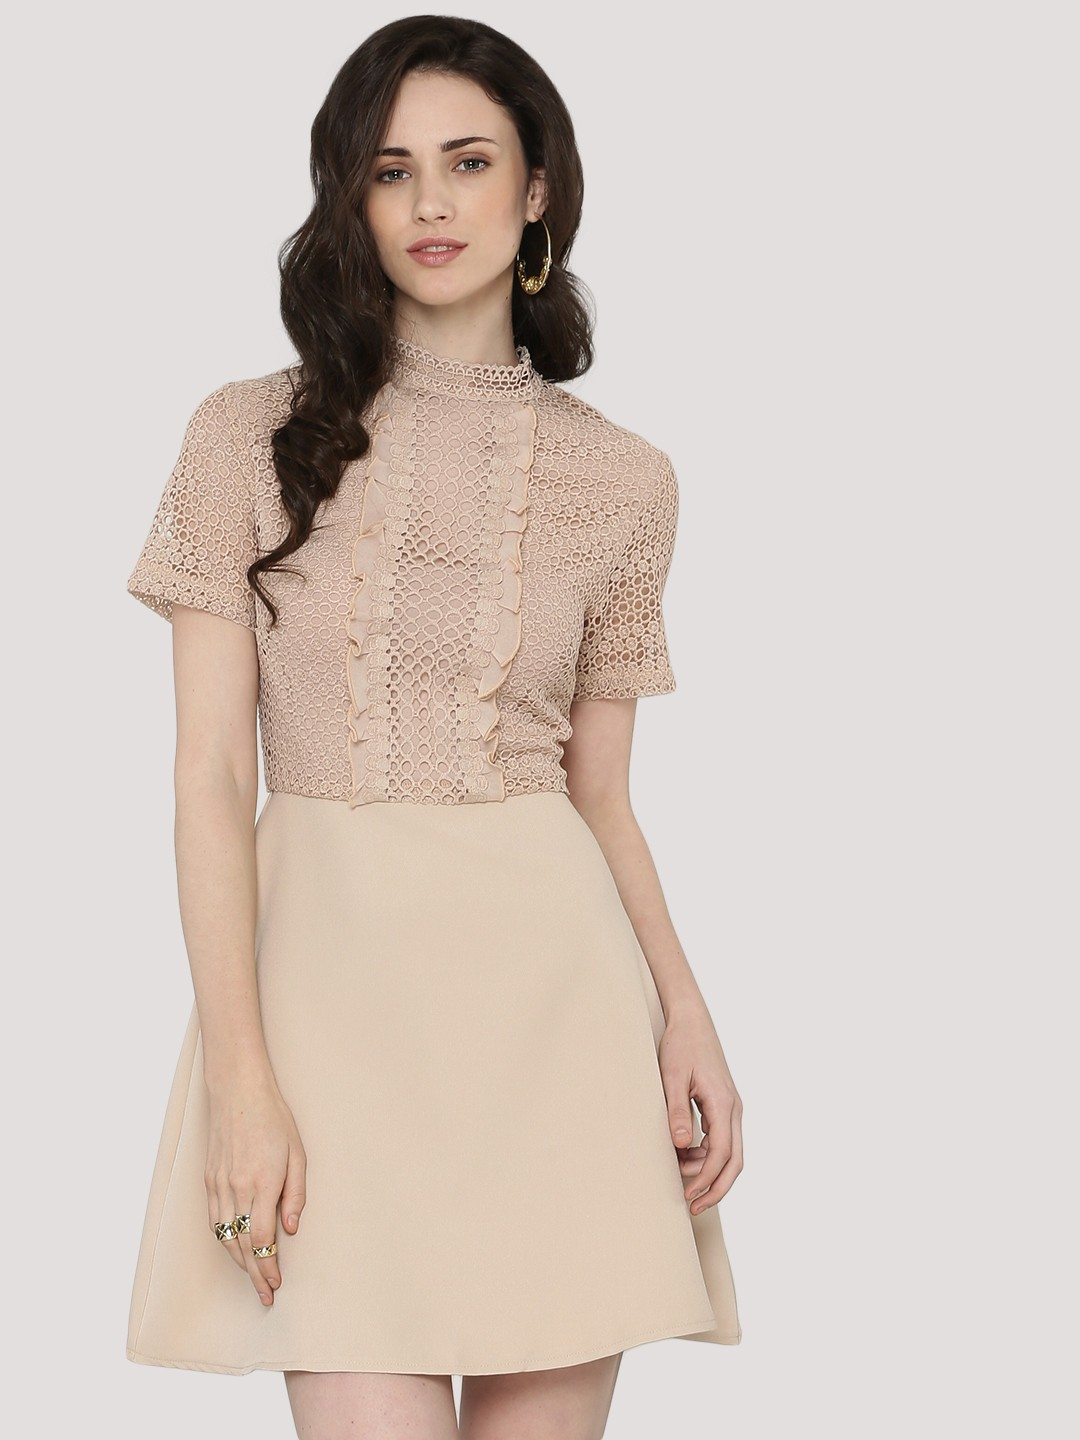 Lace Dresses Online - Buy Lace Dresses for Women Online in India